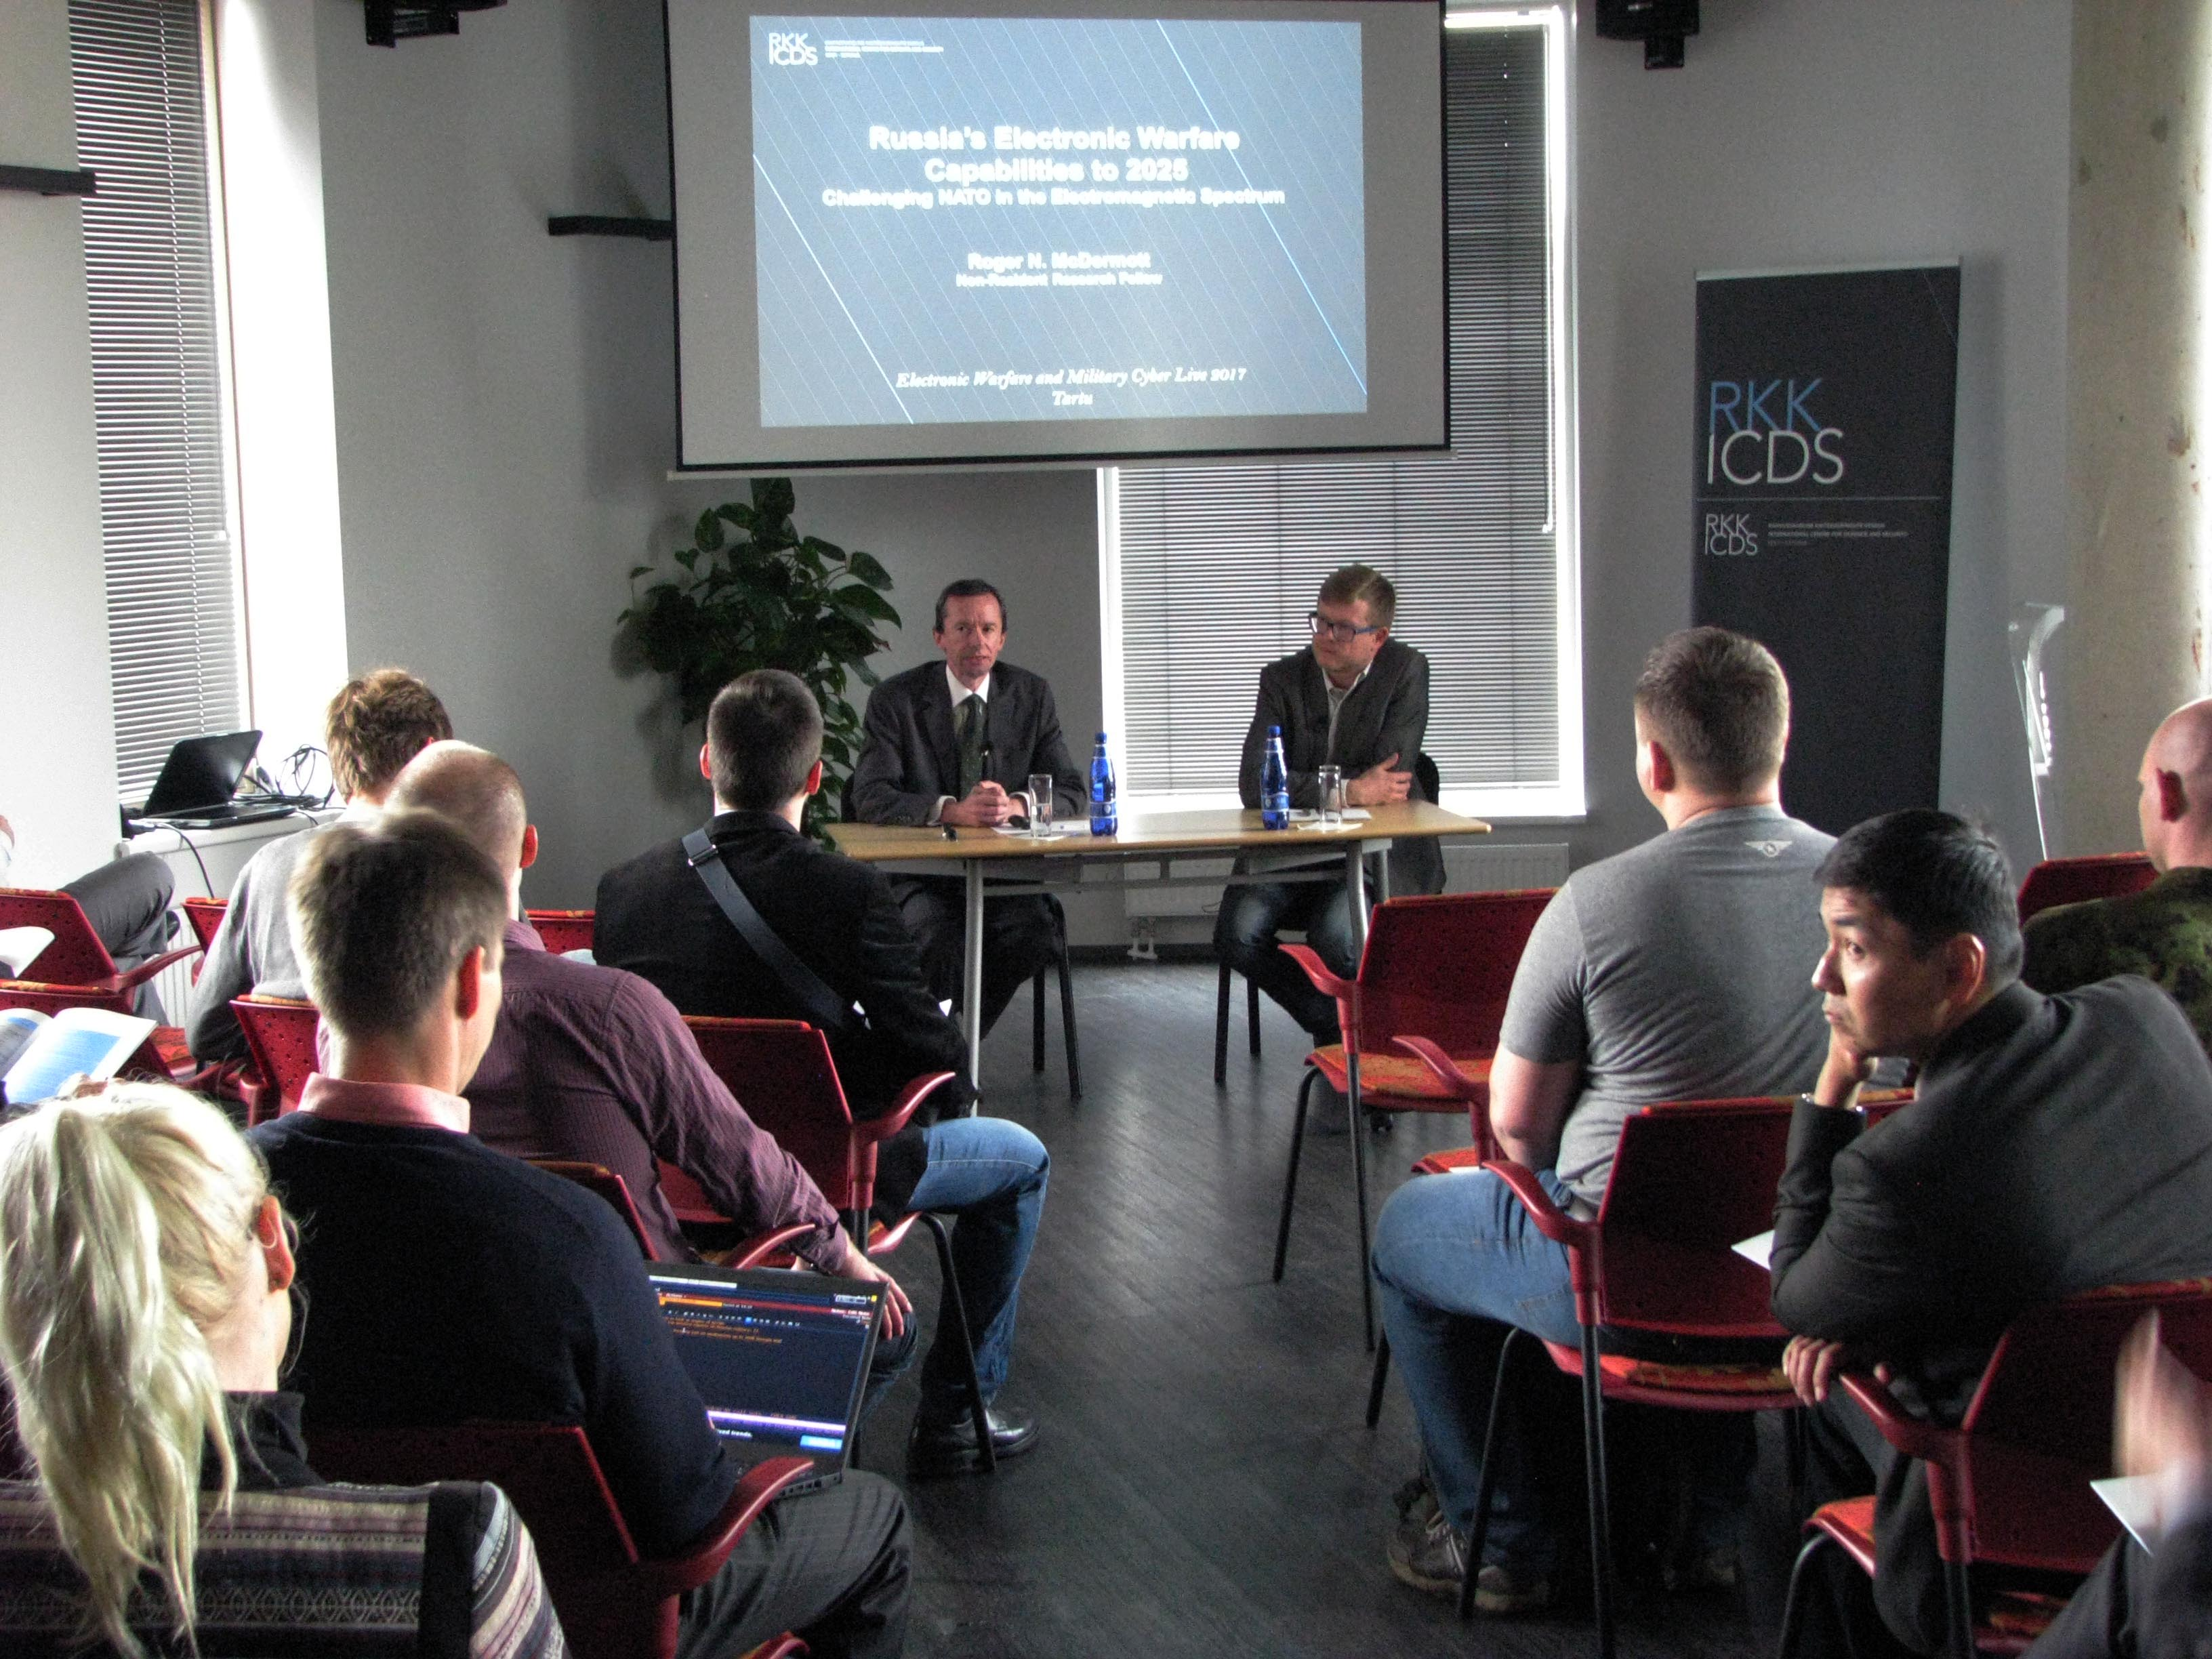 Image for ICDS Report Launch Event in Tallinn